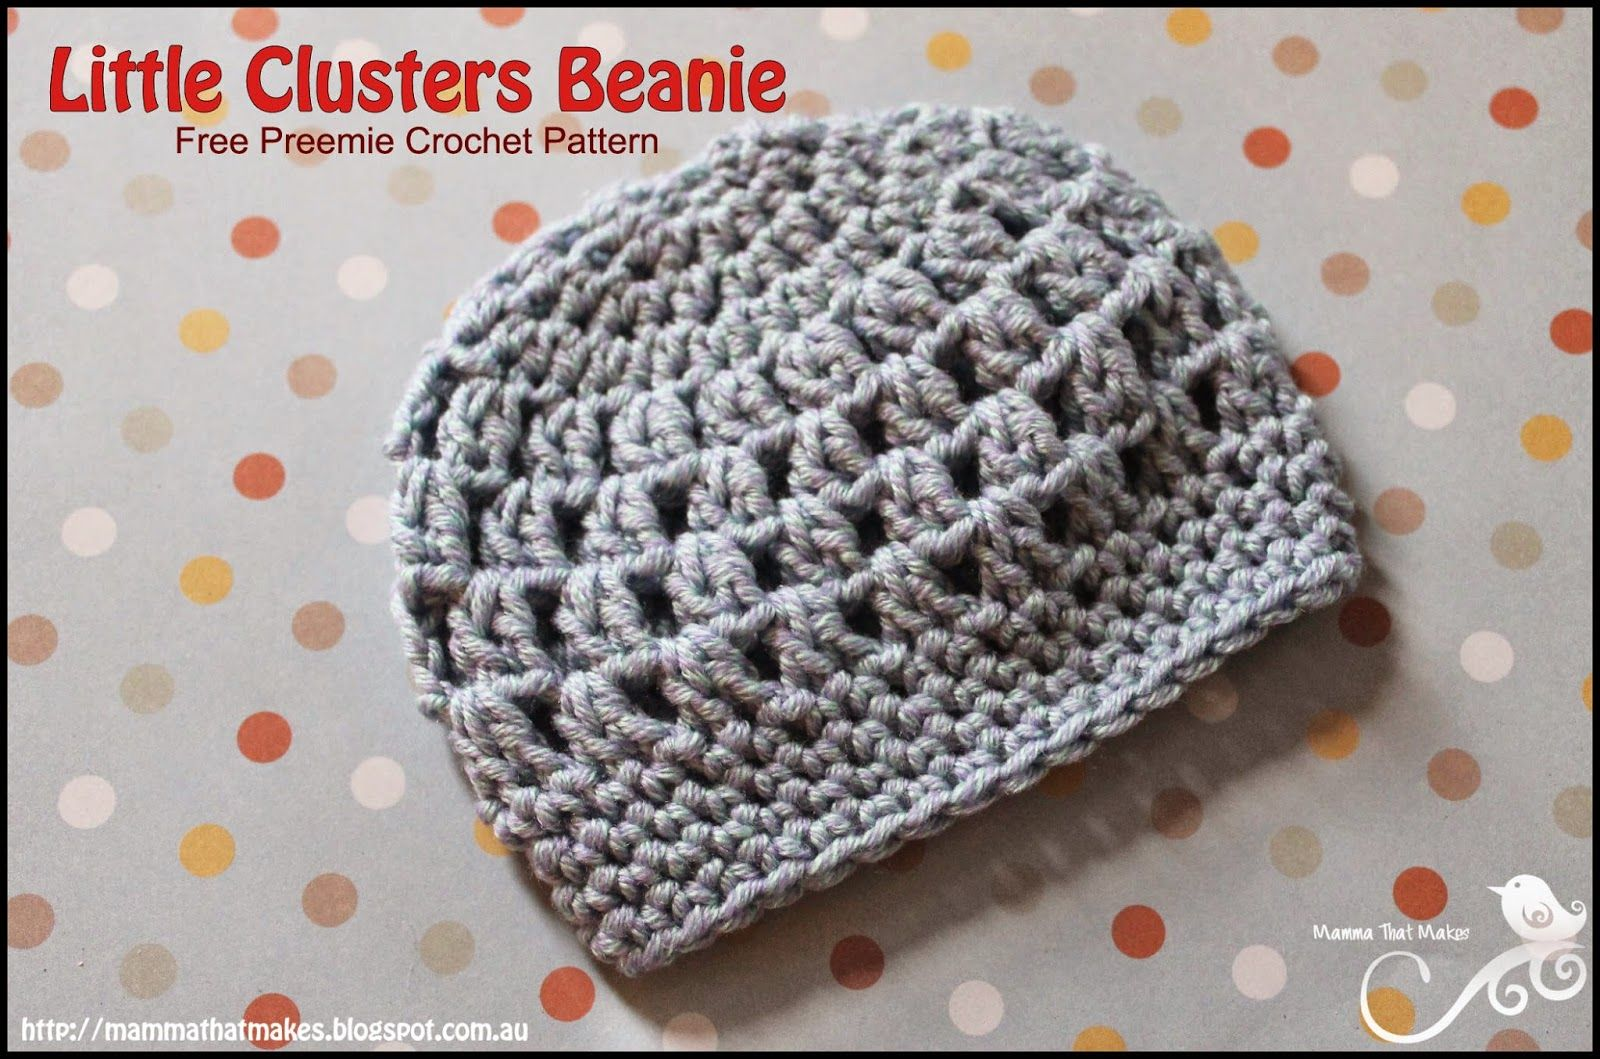 Mammathatmakes free cluster stitch crochet hat pattern for a free cluster stitch crochet hat pattern for a preemie baby of 26 weeks gestation bankloansurffo Choice Image